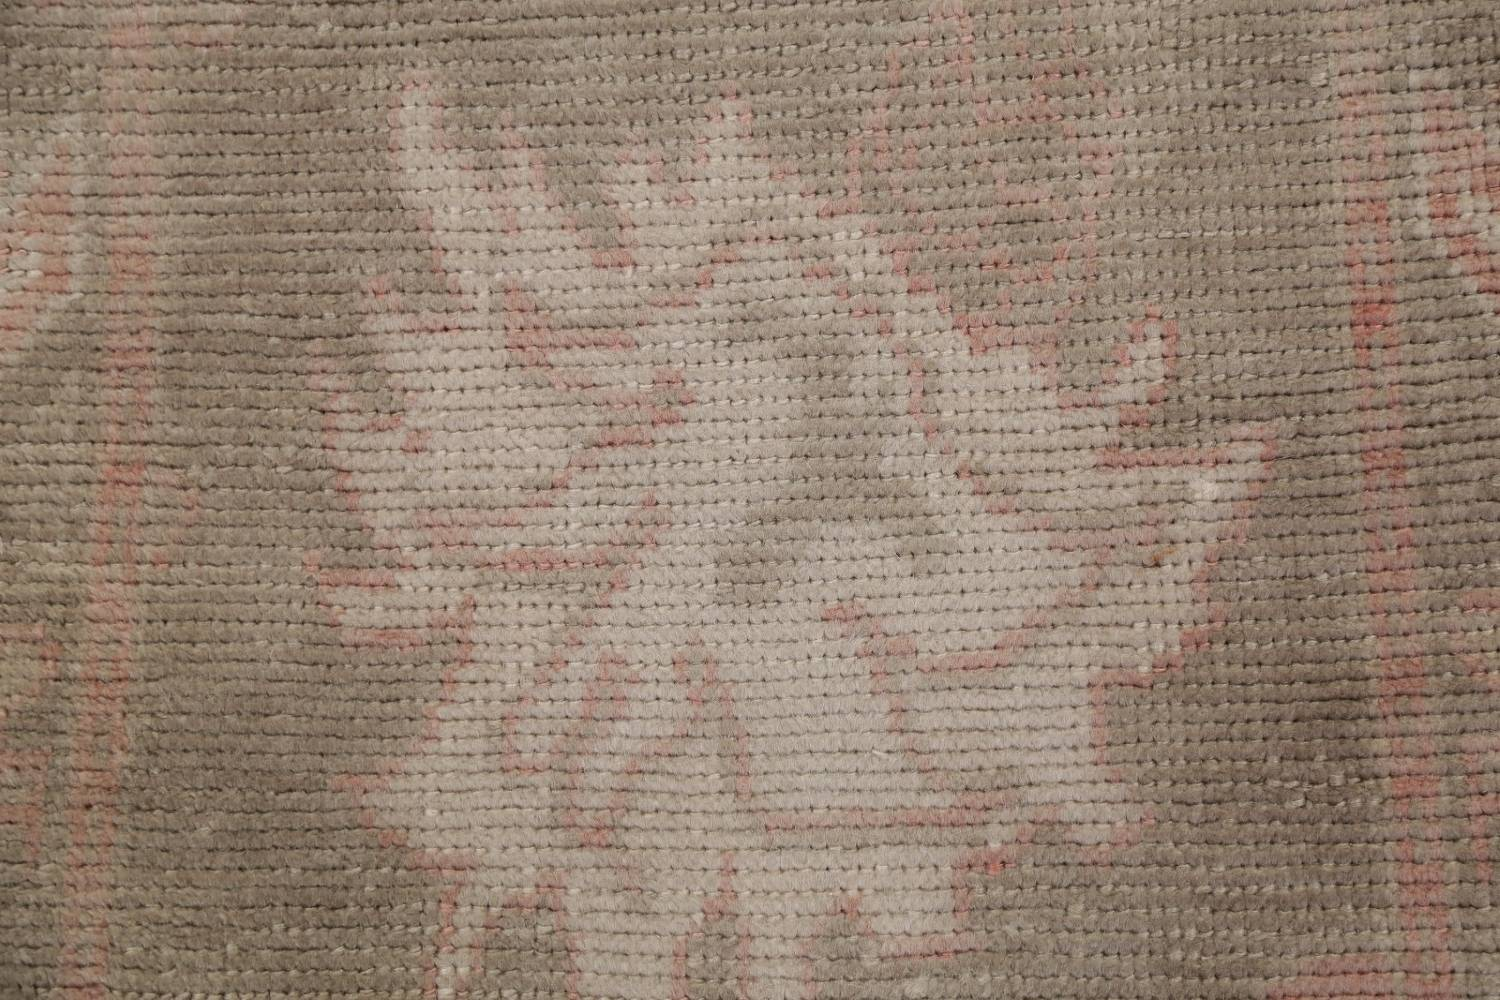 Vegetable Dye Muted Green Oushak Turkish Hand-Knotted Runner Rug 2x12 image 10